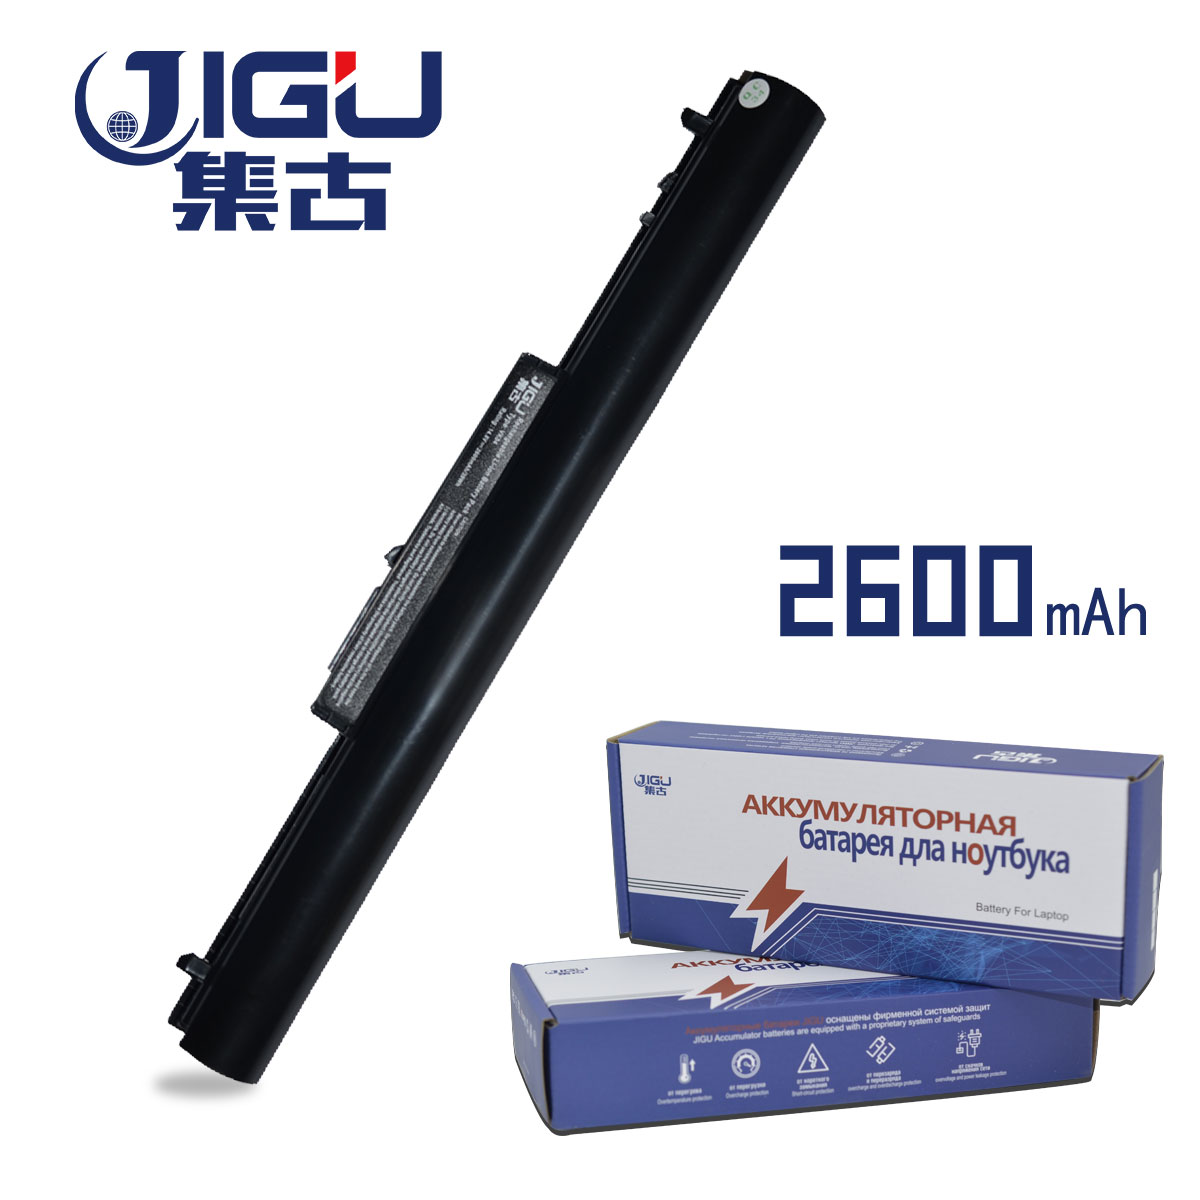 JIGU New Laptop Battery TPN Q113 TPN Q114 TPN Q115 for HP Pavilion Sleekbook 14 14T 14Z 15 15T 15Z, TouchSmart 14-B137TX Series 58wh original laptop battery for xps 14z l412x 14z l412z v79y0 ymyf6 0ymyf6